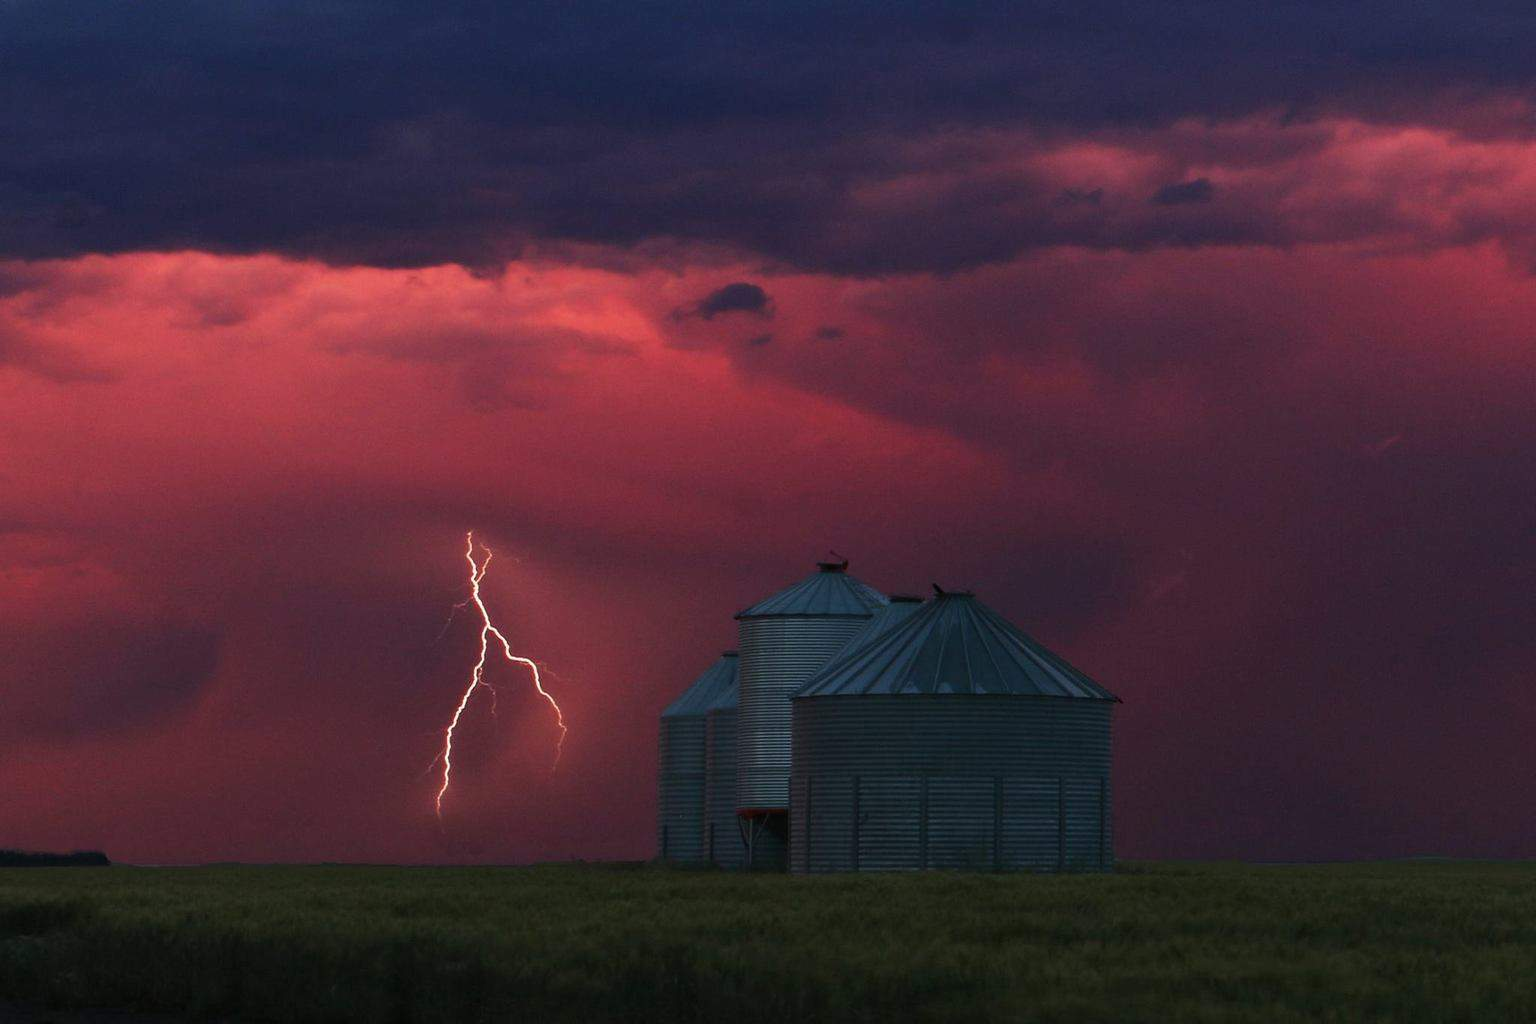 Setting sun set the sky aglow then this bolt of lightning completed this surreal scene. As always I hope you enjoy